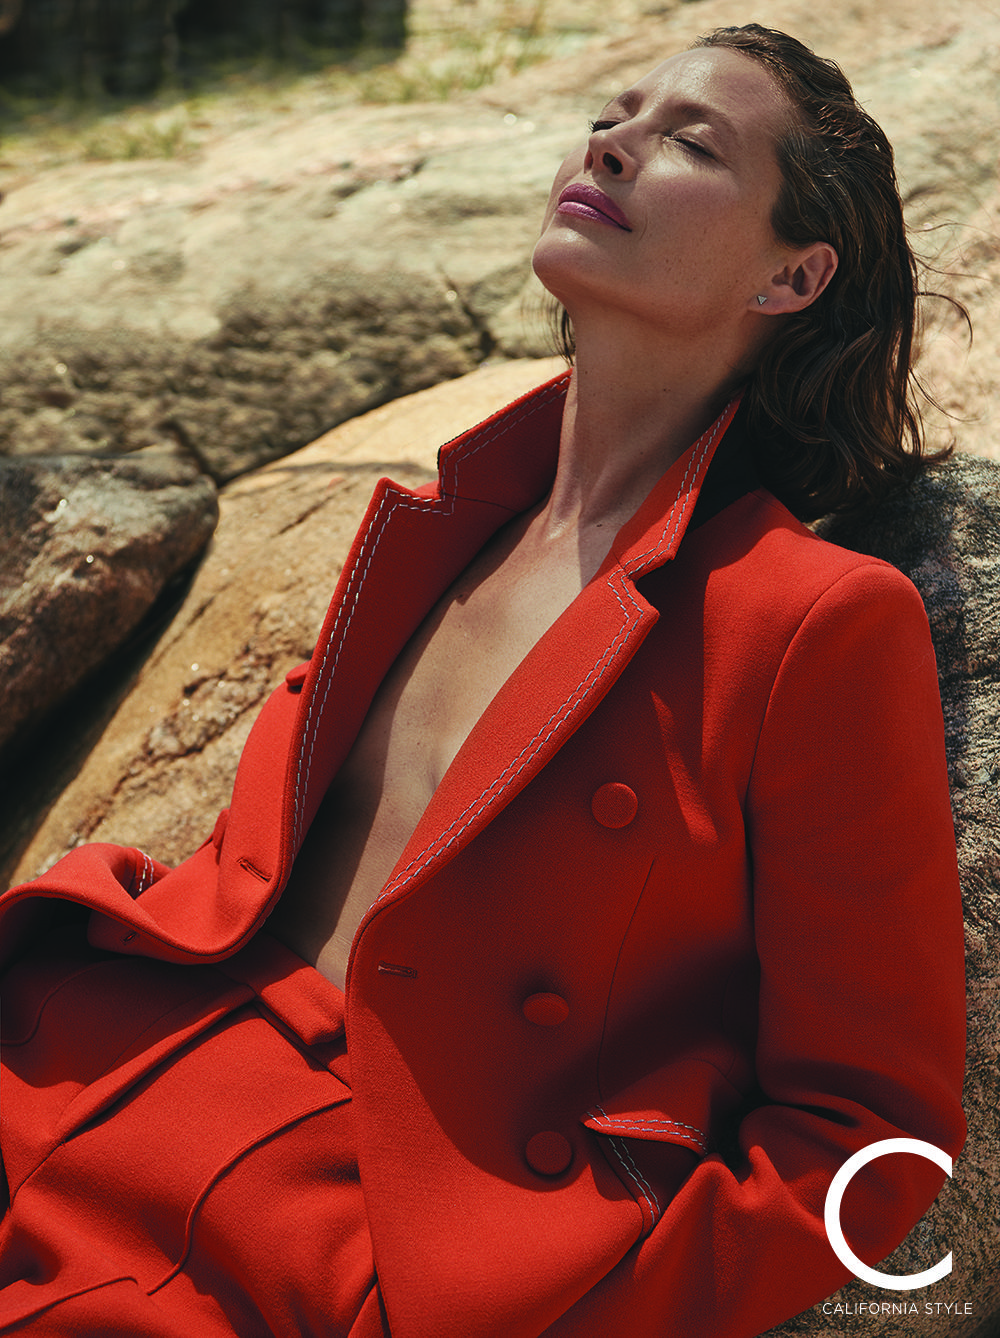 Christy Turlington Burns Talks Maternal Health With C Magazine On